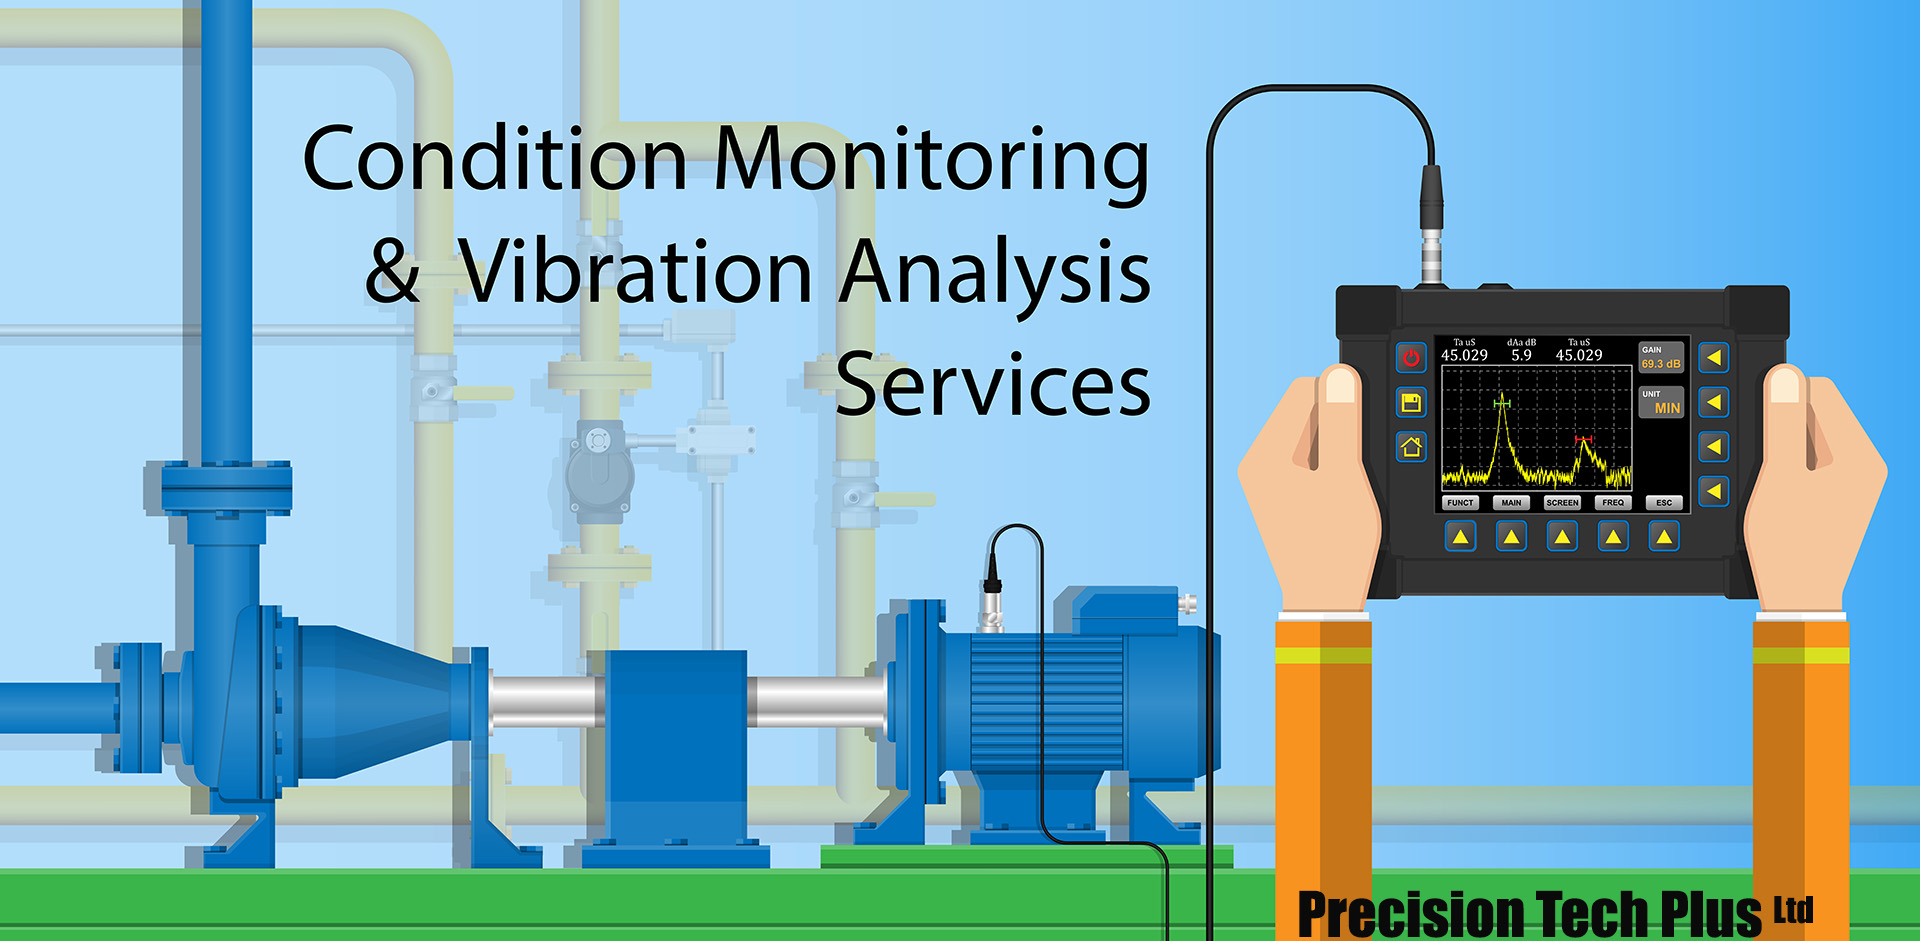 Condition Monitoring & Vibration Analysis